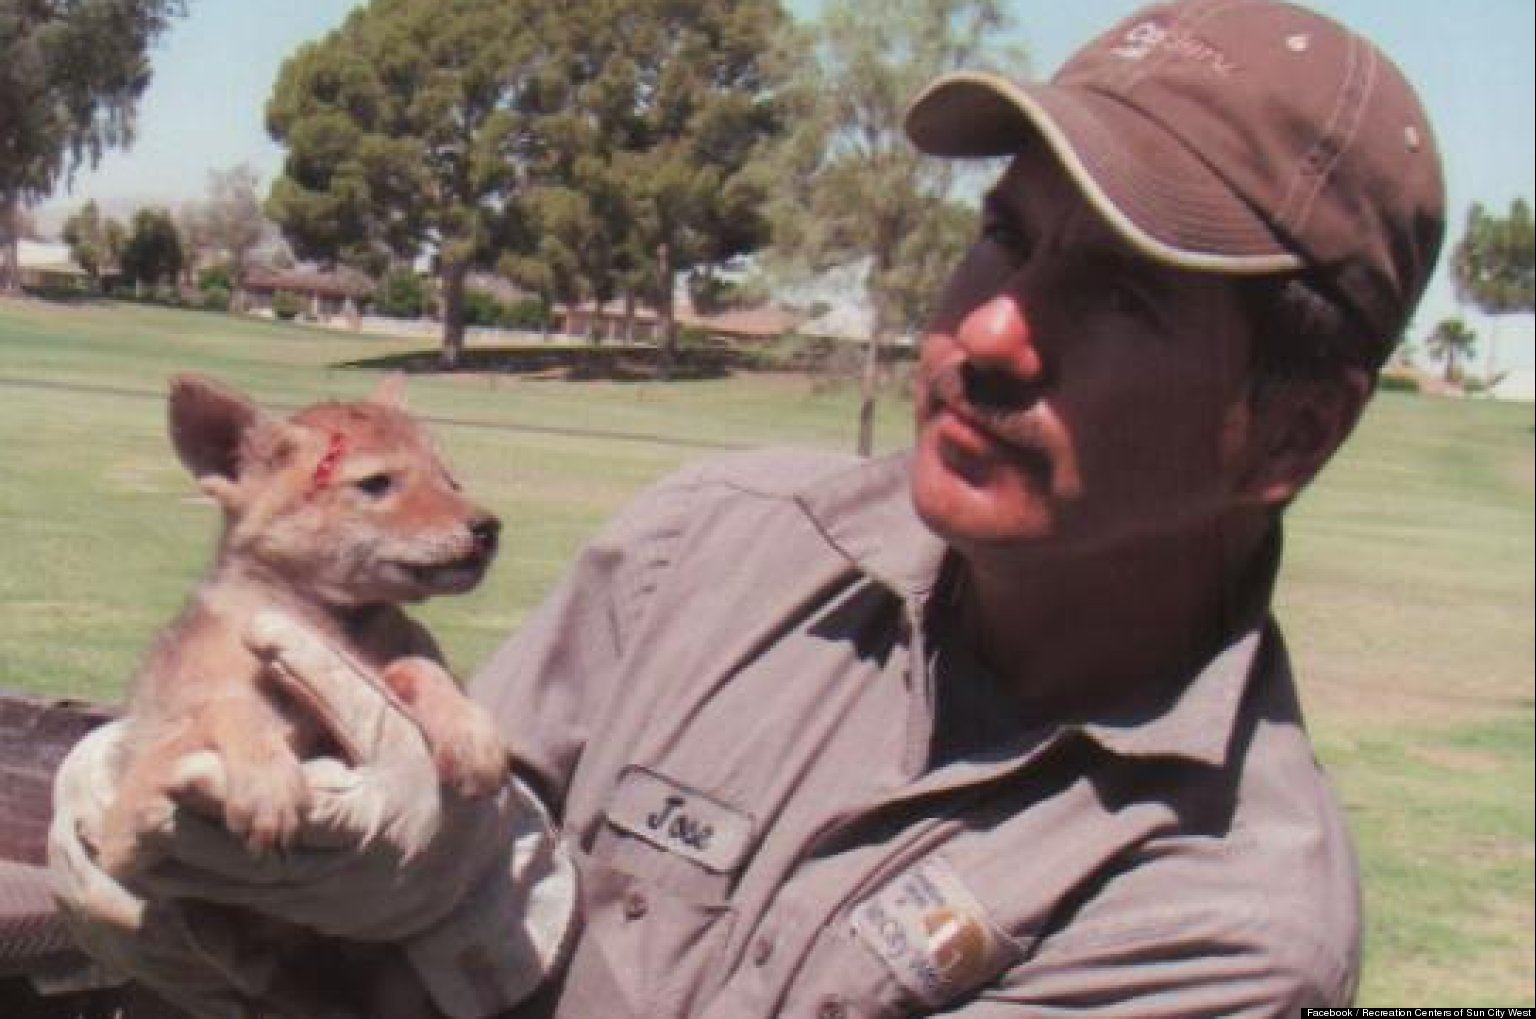 Arizona Golf Course Workers Save Coyote Puppy Covered In